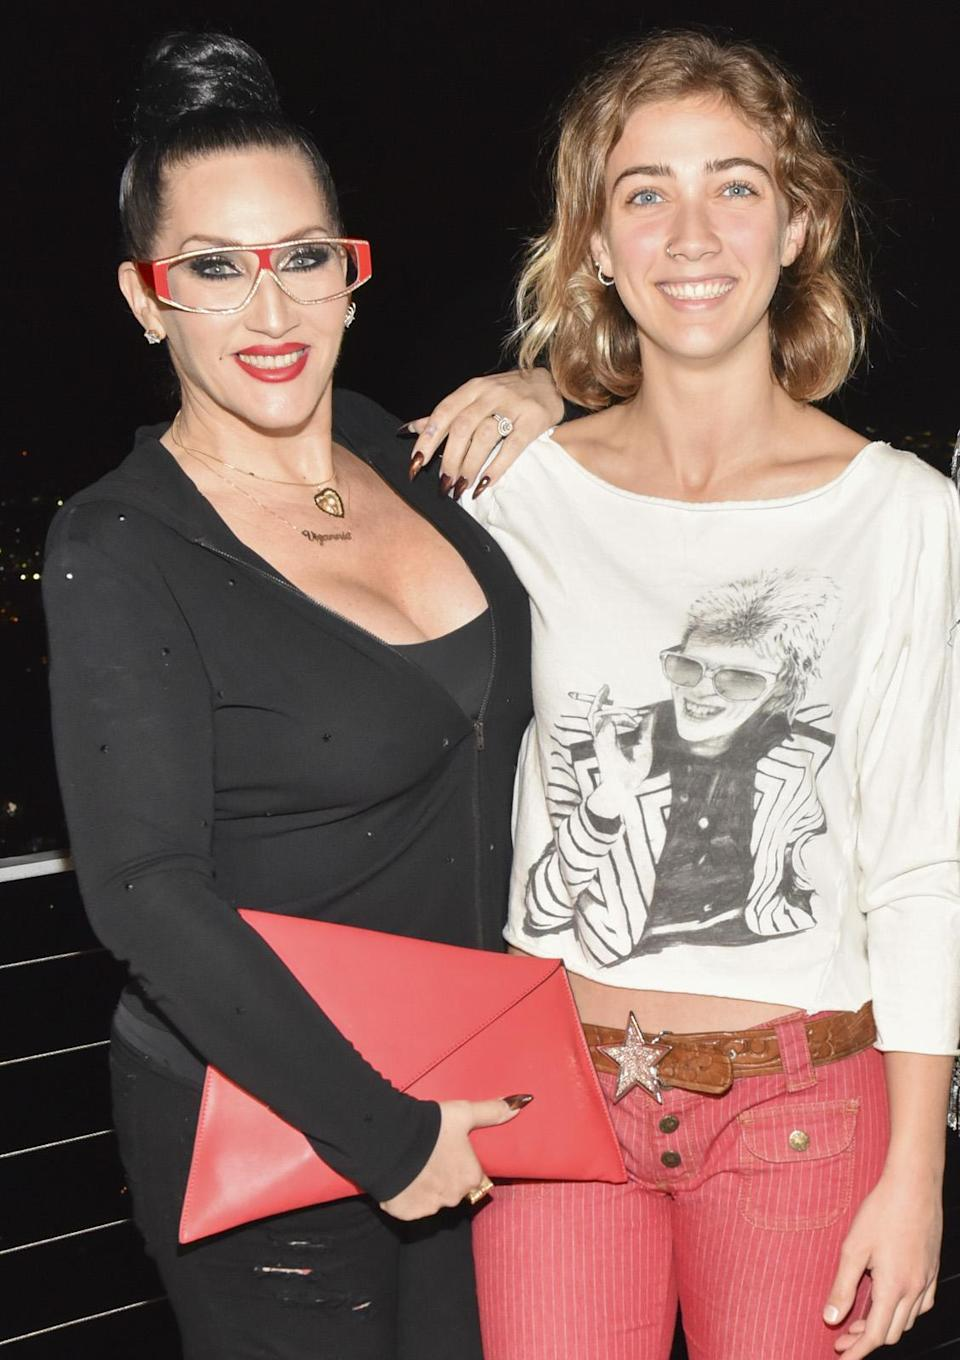 Michelle Visage with daughter Lillie Case in 2017. (Photo: Rodin Eckenroth/Getty Images)